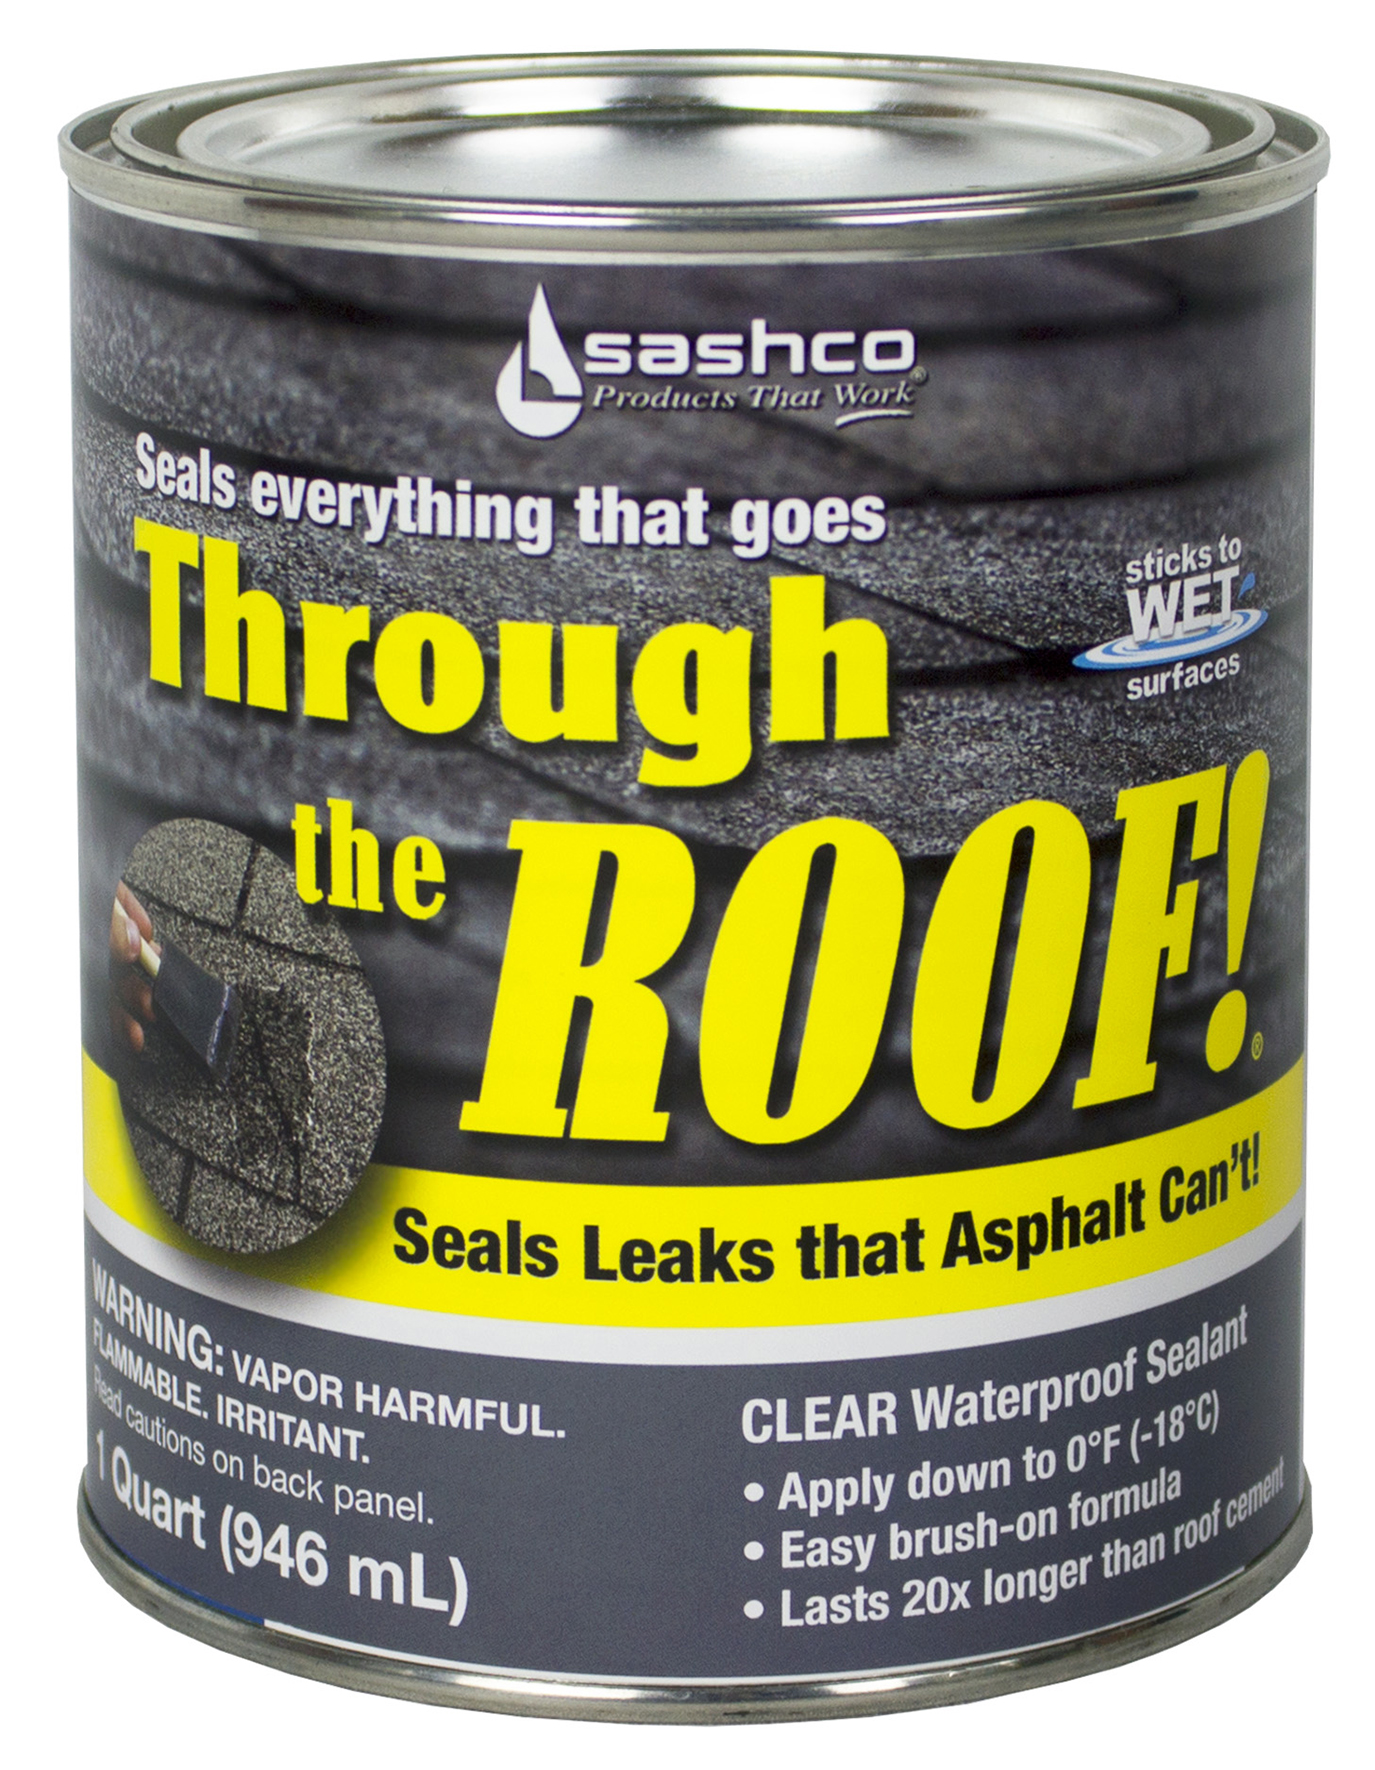 Marvelous Sashco Sealants 14023 QT 1 Quart Through The Roof Sealant